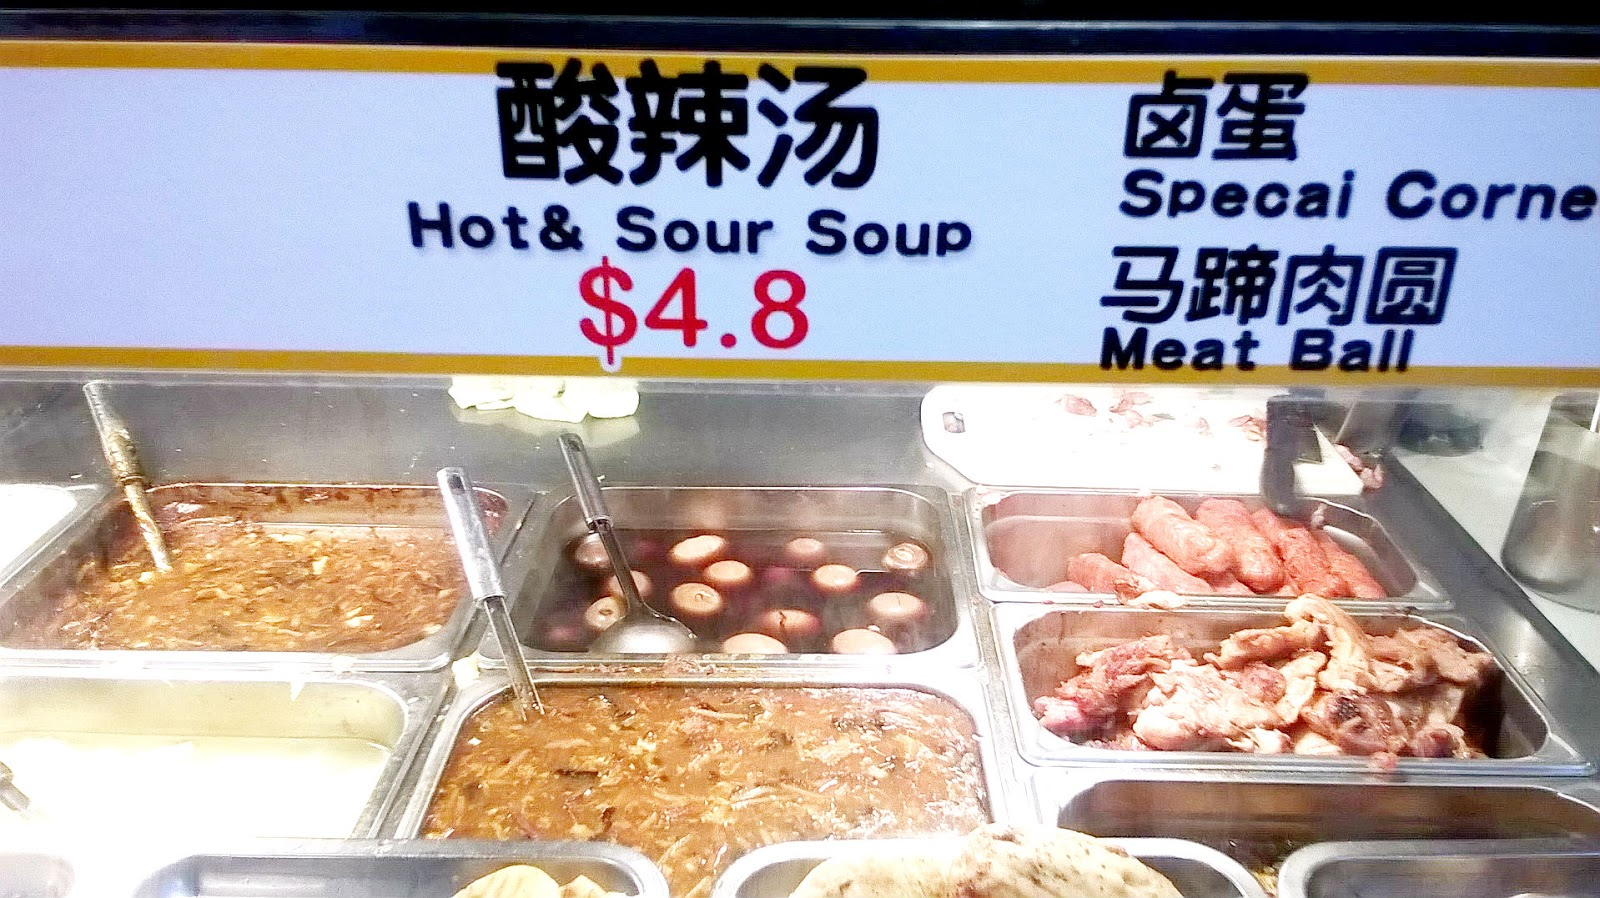 What Is In The Bain Marie That Day. Look At The Spelling Mistake Of  Special  Is It Supposed To Be Special Or Specai?